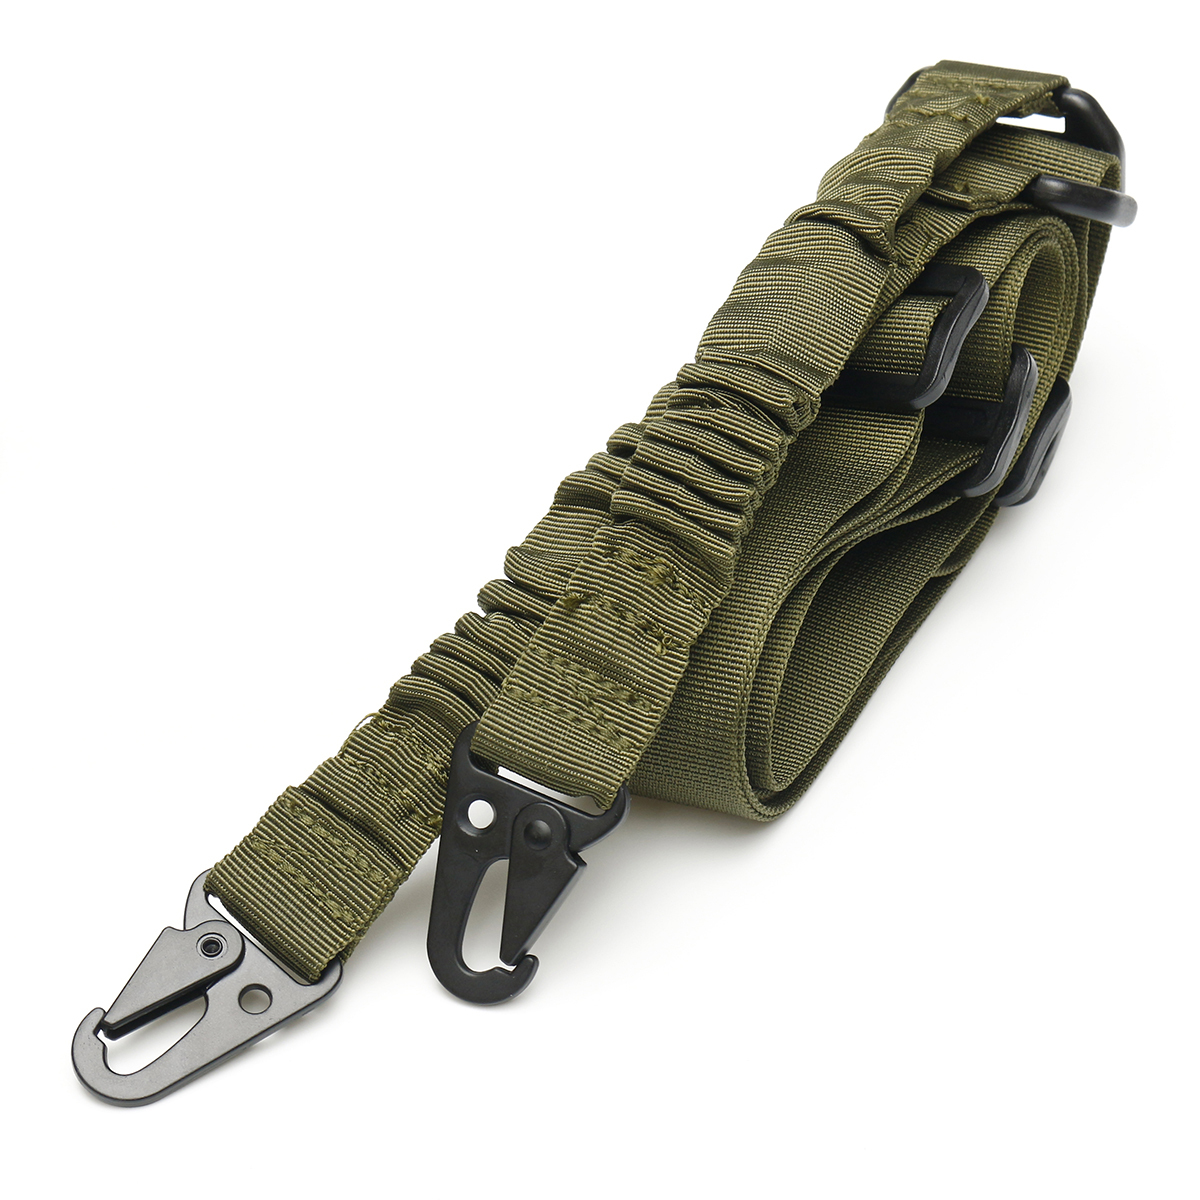 EDC 2 Point Sling Multi-Use Two Point Gun Sling String Clip Sling CS Tactics Gad